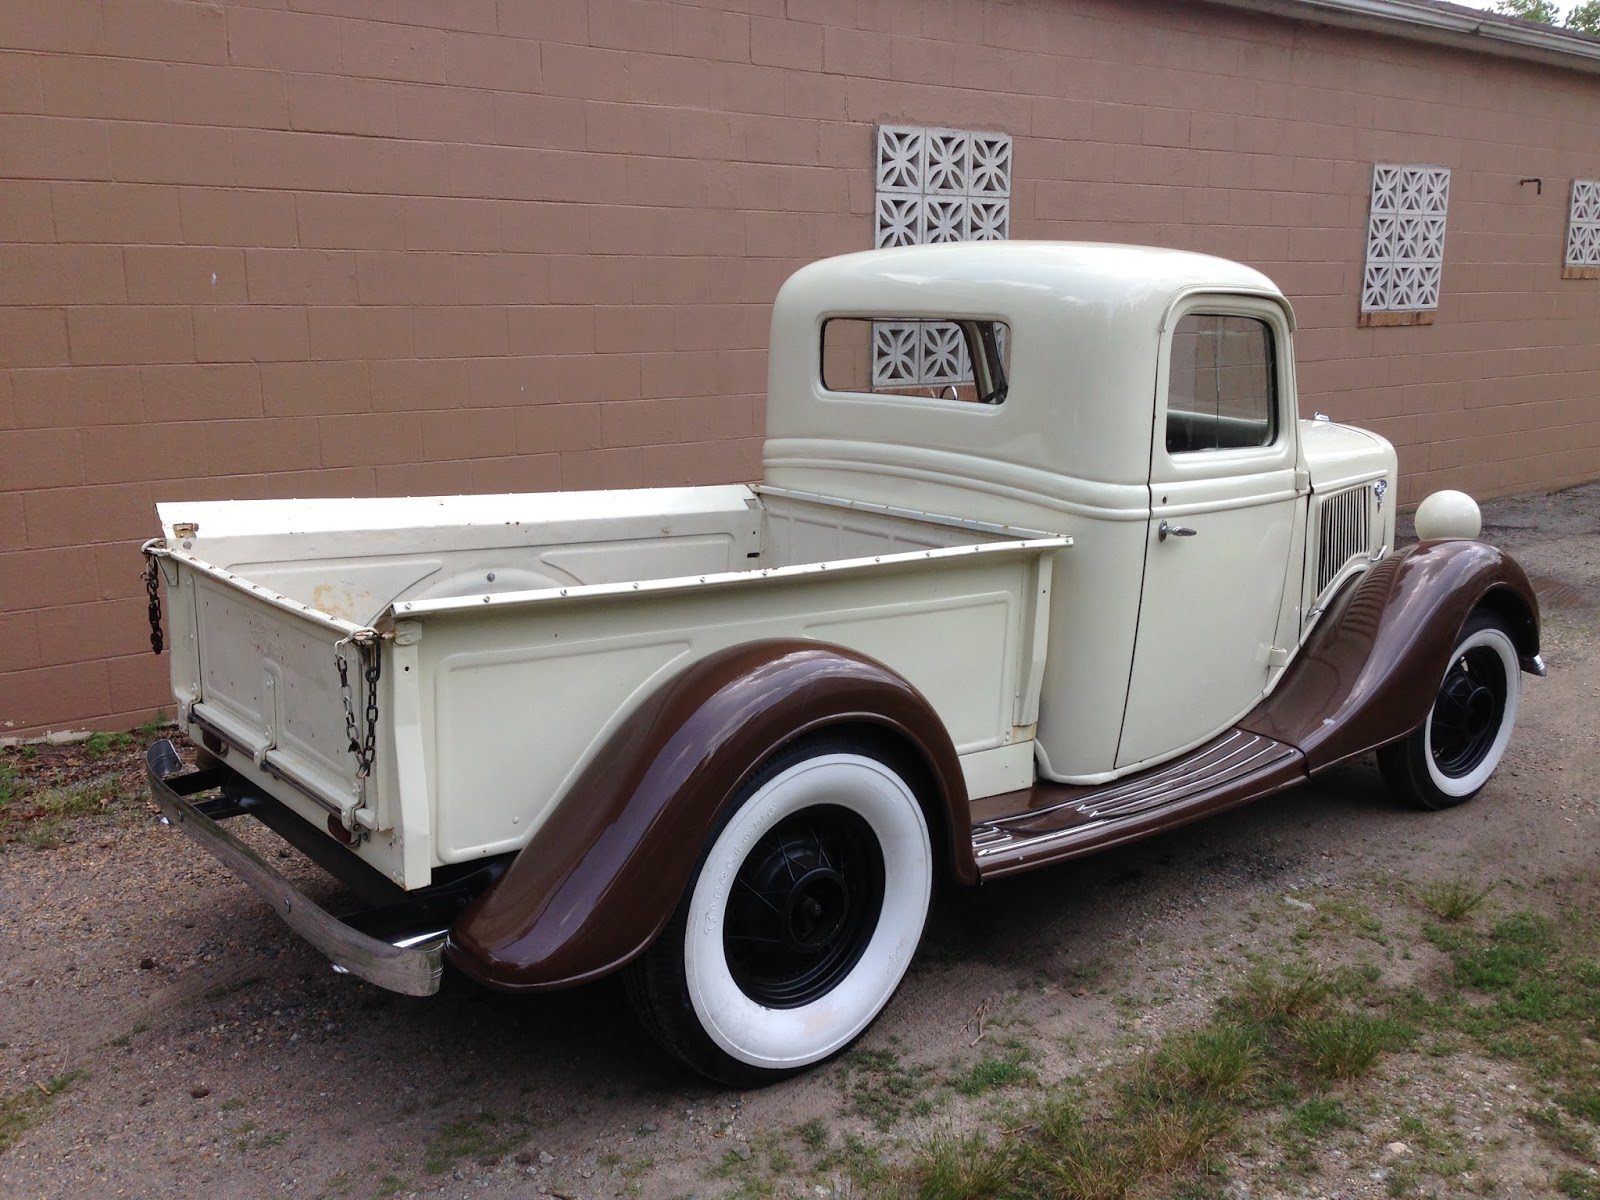 Joe Smith Early V8 & Hot Rod: 1936 Ford Pickup Truck For Sale